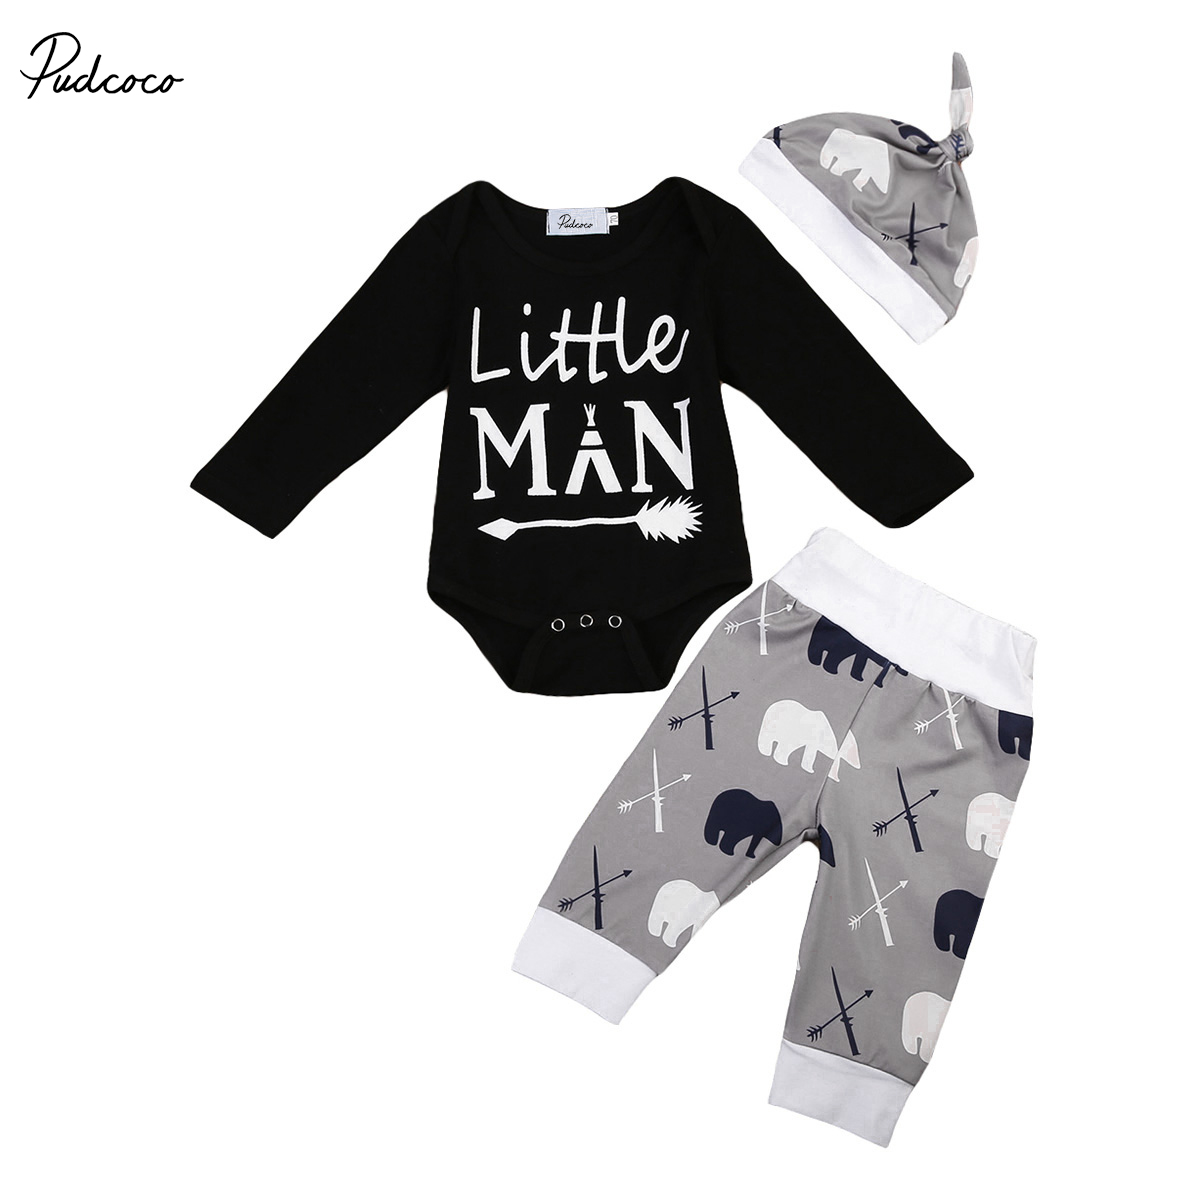 3PCS Set Newborn Baby Boy Winter Clothes Cotton Romper Jumpsuit + Long Pants + Hat Cotton Little Man Outfits Letter Printed 0 24m newborn infant baby boy girl clothes set romper bodysuit tops rainbow long pants hat 3pcs toddler winter fall outfits